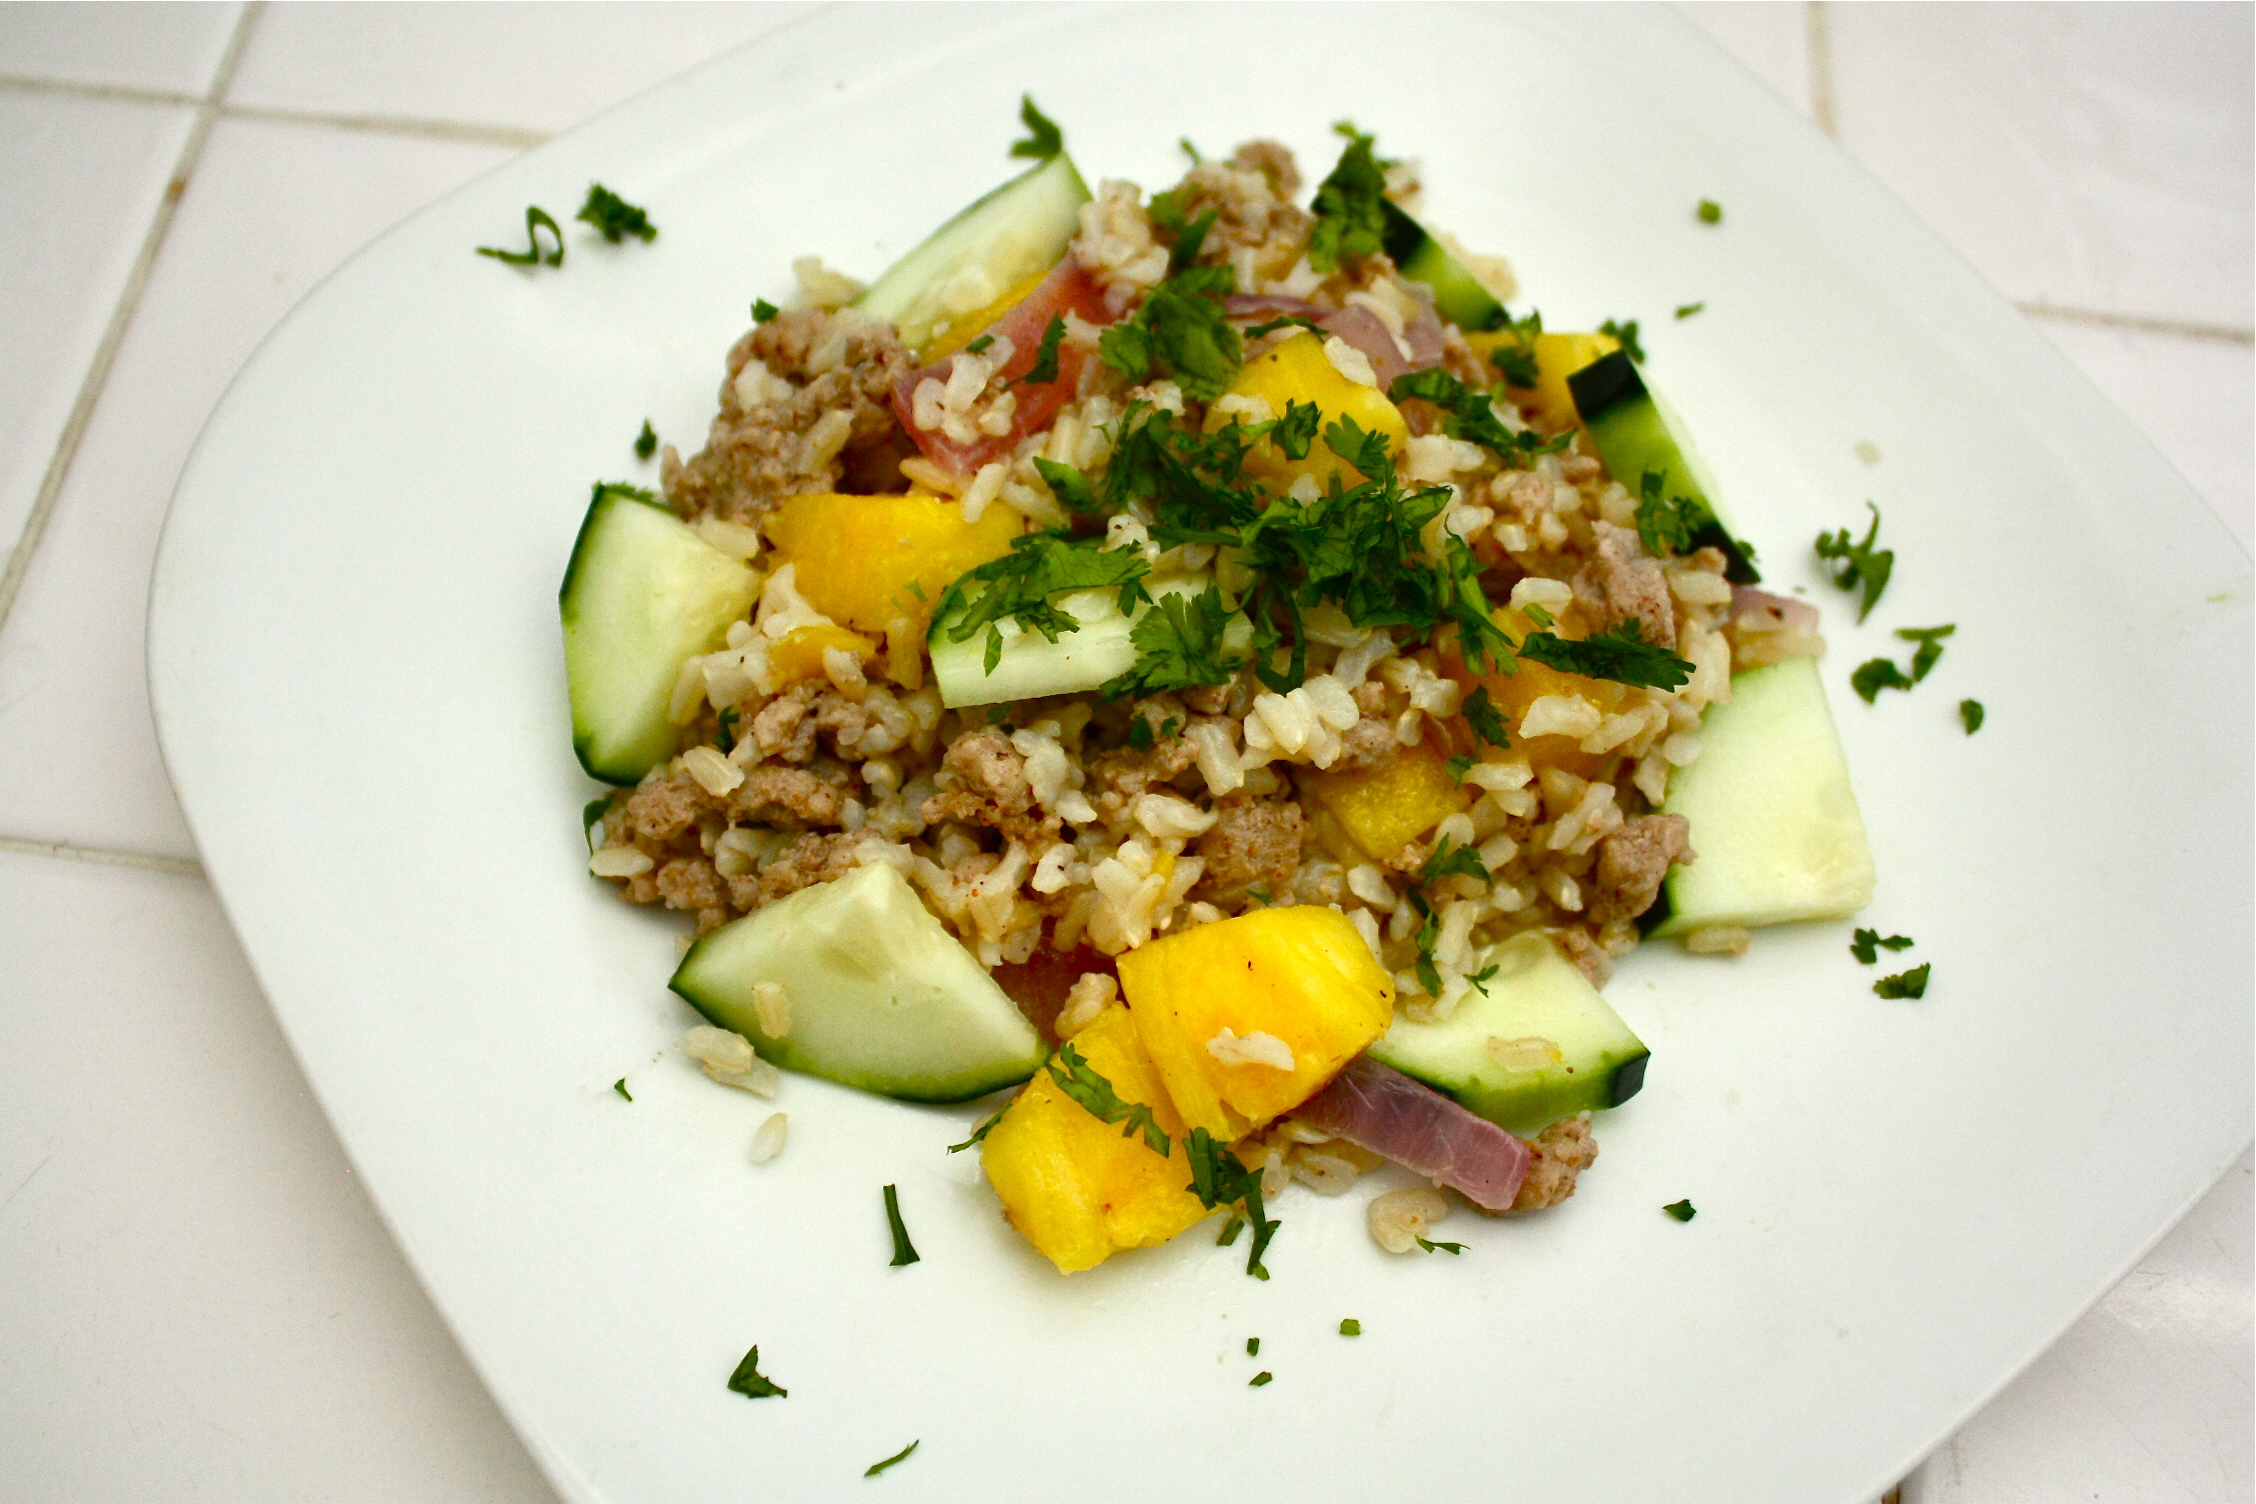 Pineapple turkey brown rice bowl ditch the recipe one of my favorite things to do is create recipes using a bunch of random ingredients i have in my kitchen this is especially fun when trying to use up forumfinder Image collections